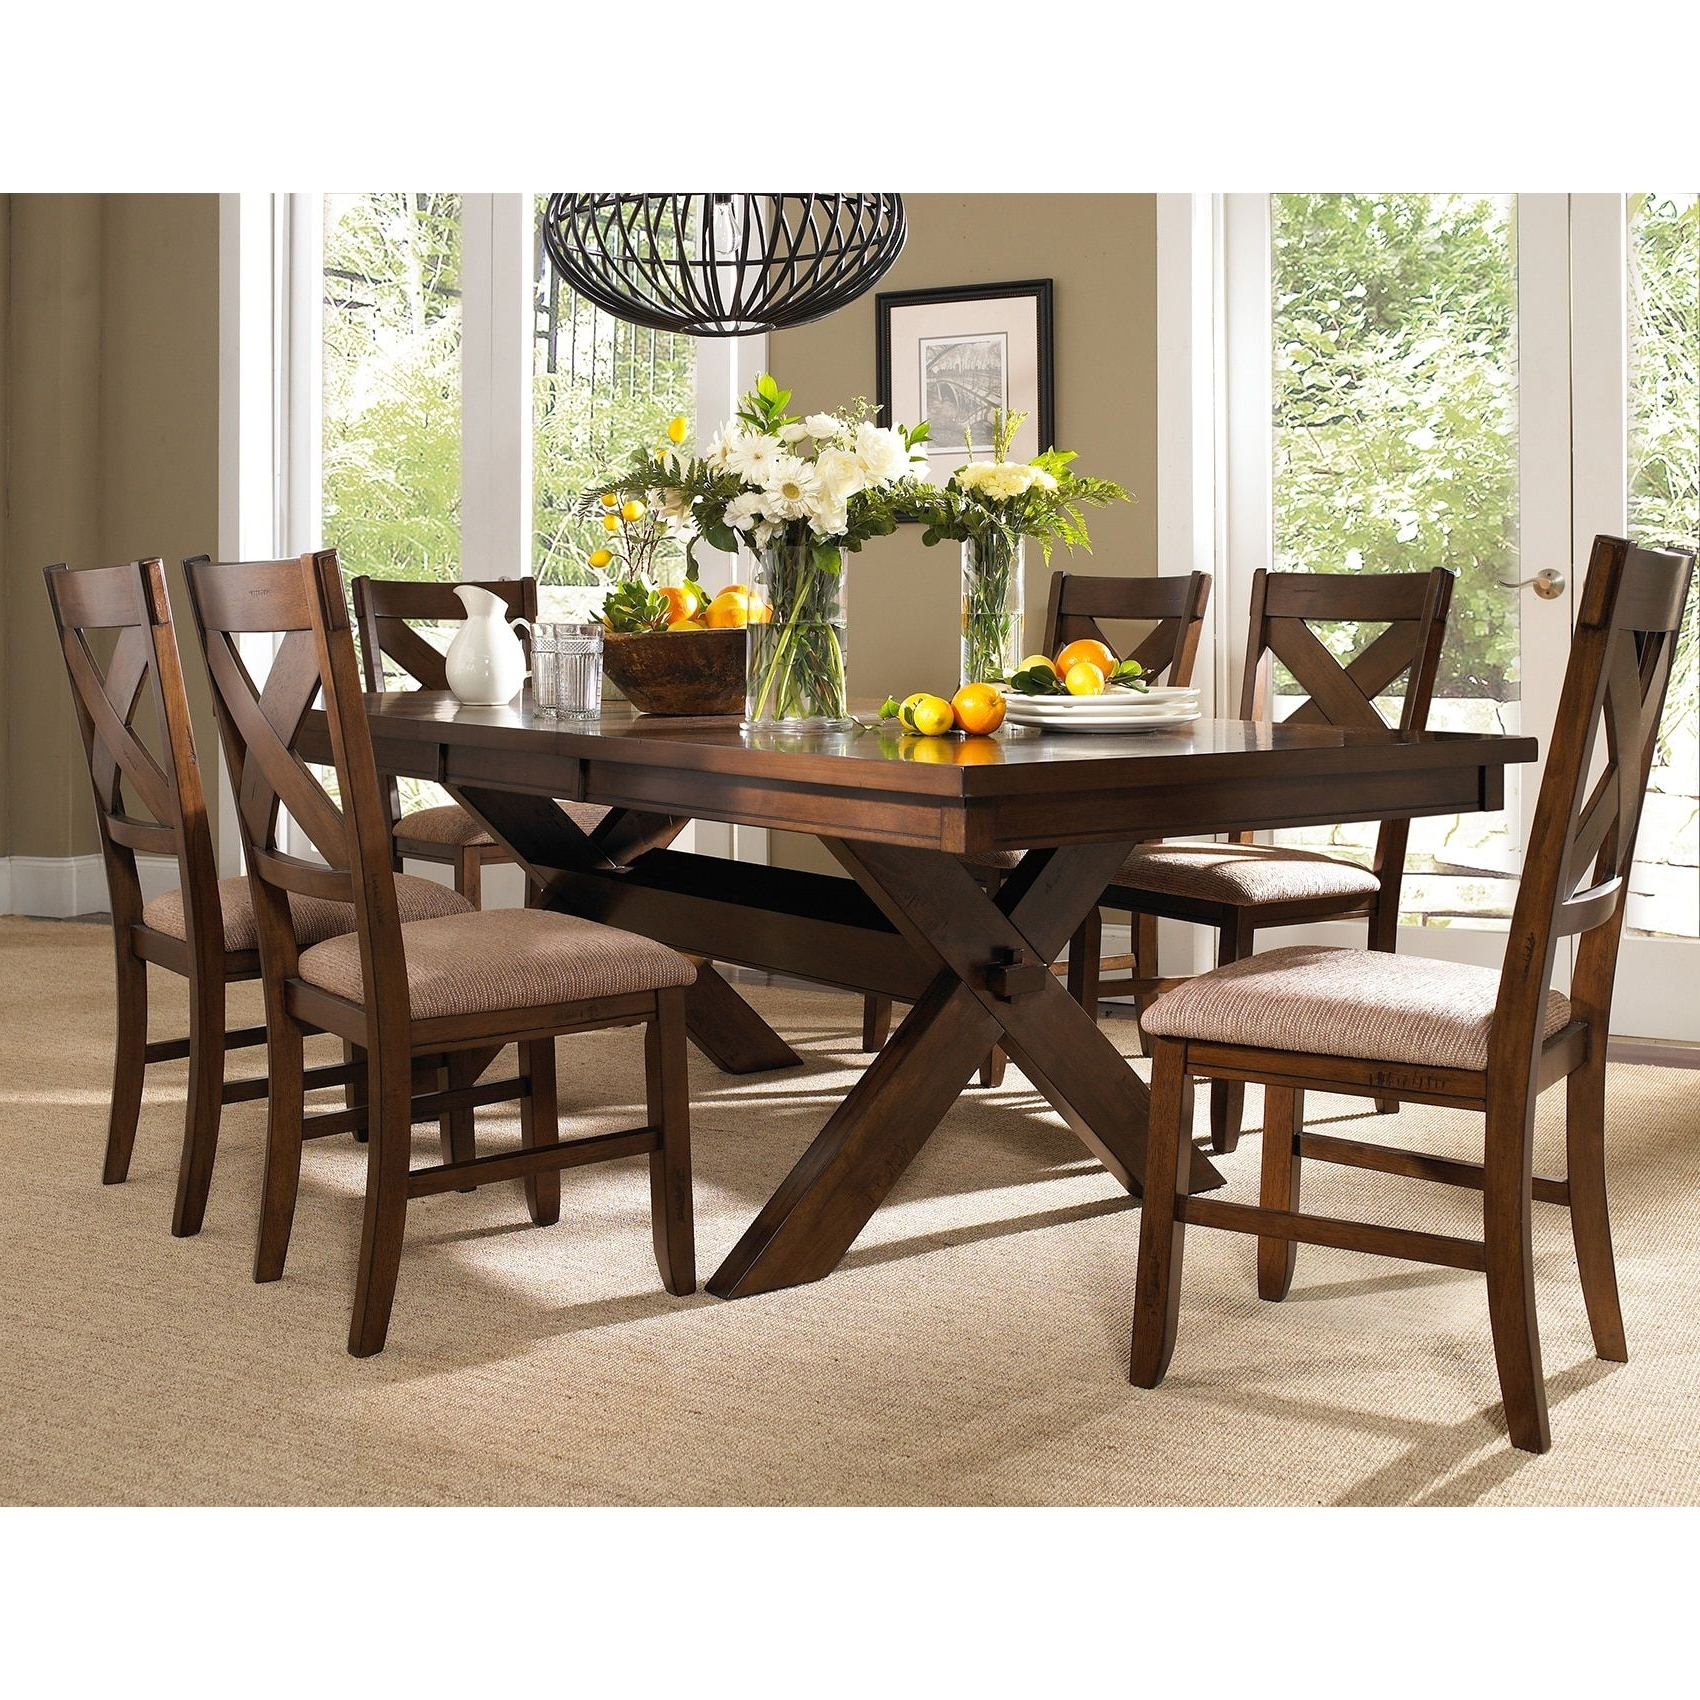 7 Piece Solid Wood Dining Set With Table And 6 Chairs (Dark Hazelnut Throughout Most Up To Date Craftsman 7 Piece Rectangular Extension Dining Sets With Arm & Uph Side Chairs (View 2 of 25)